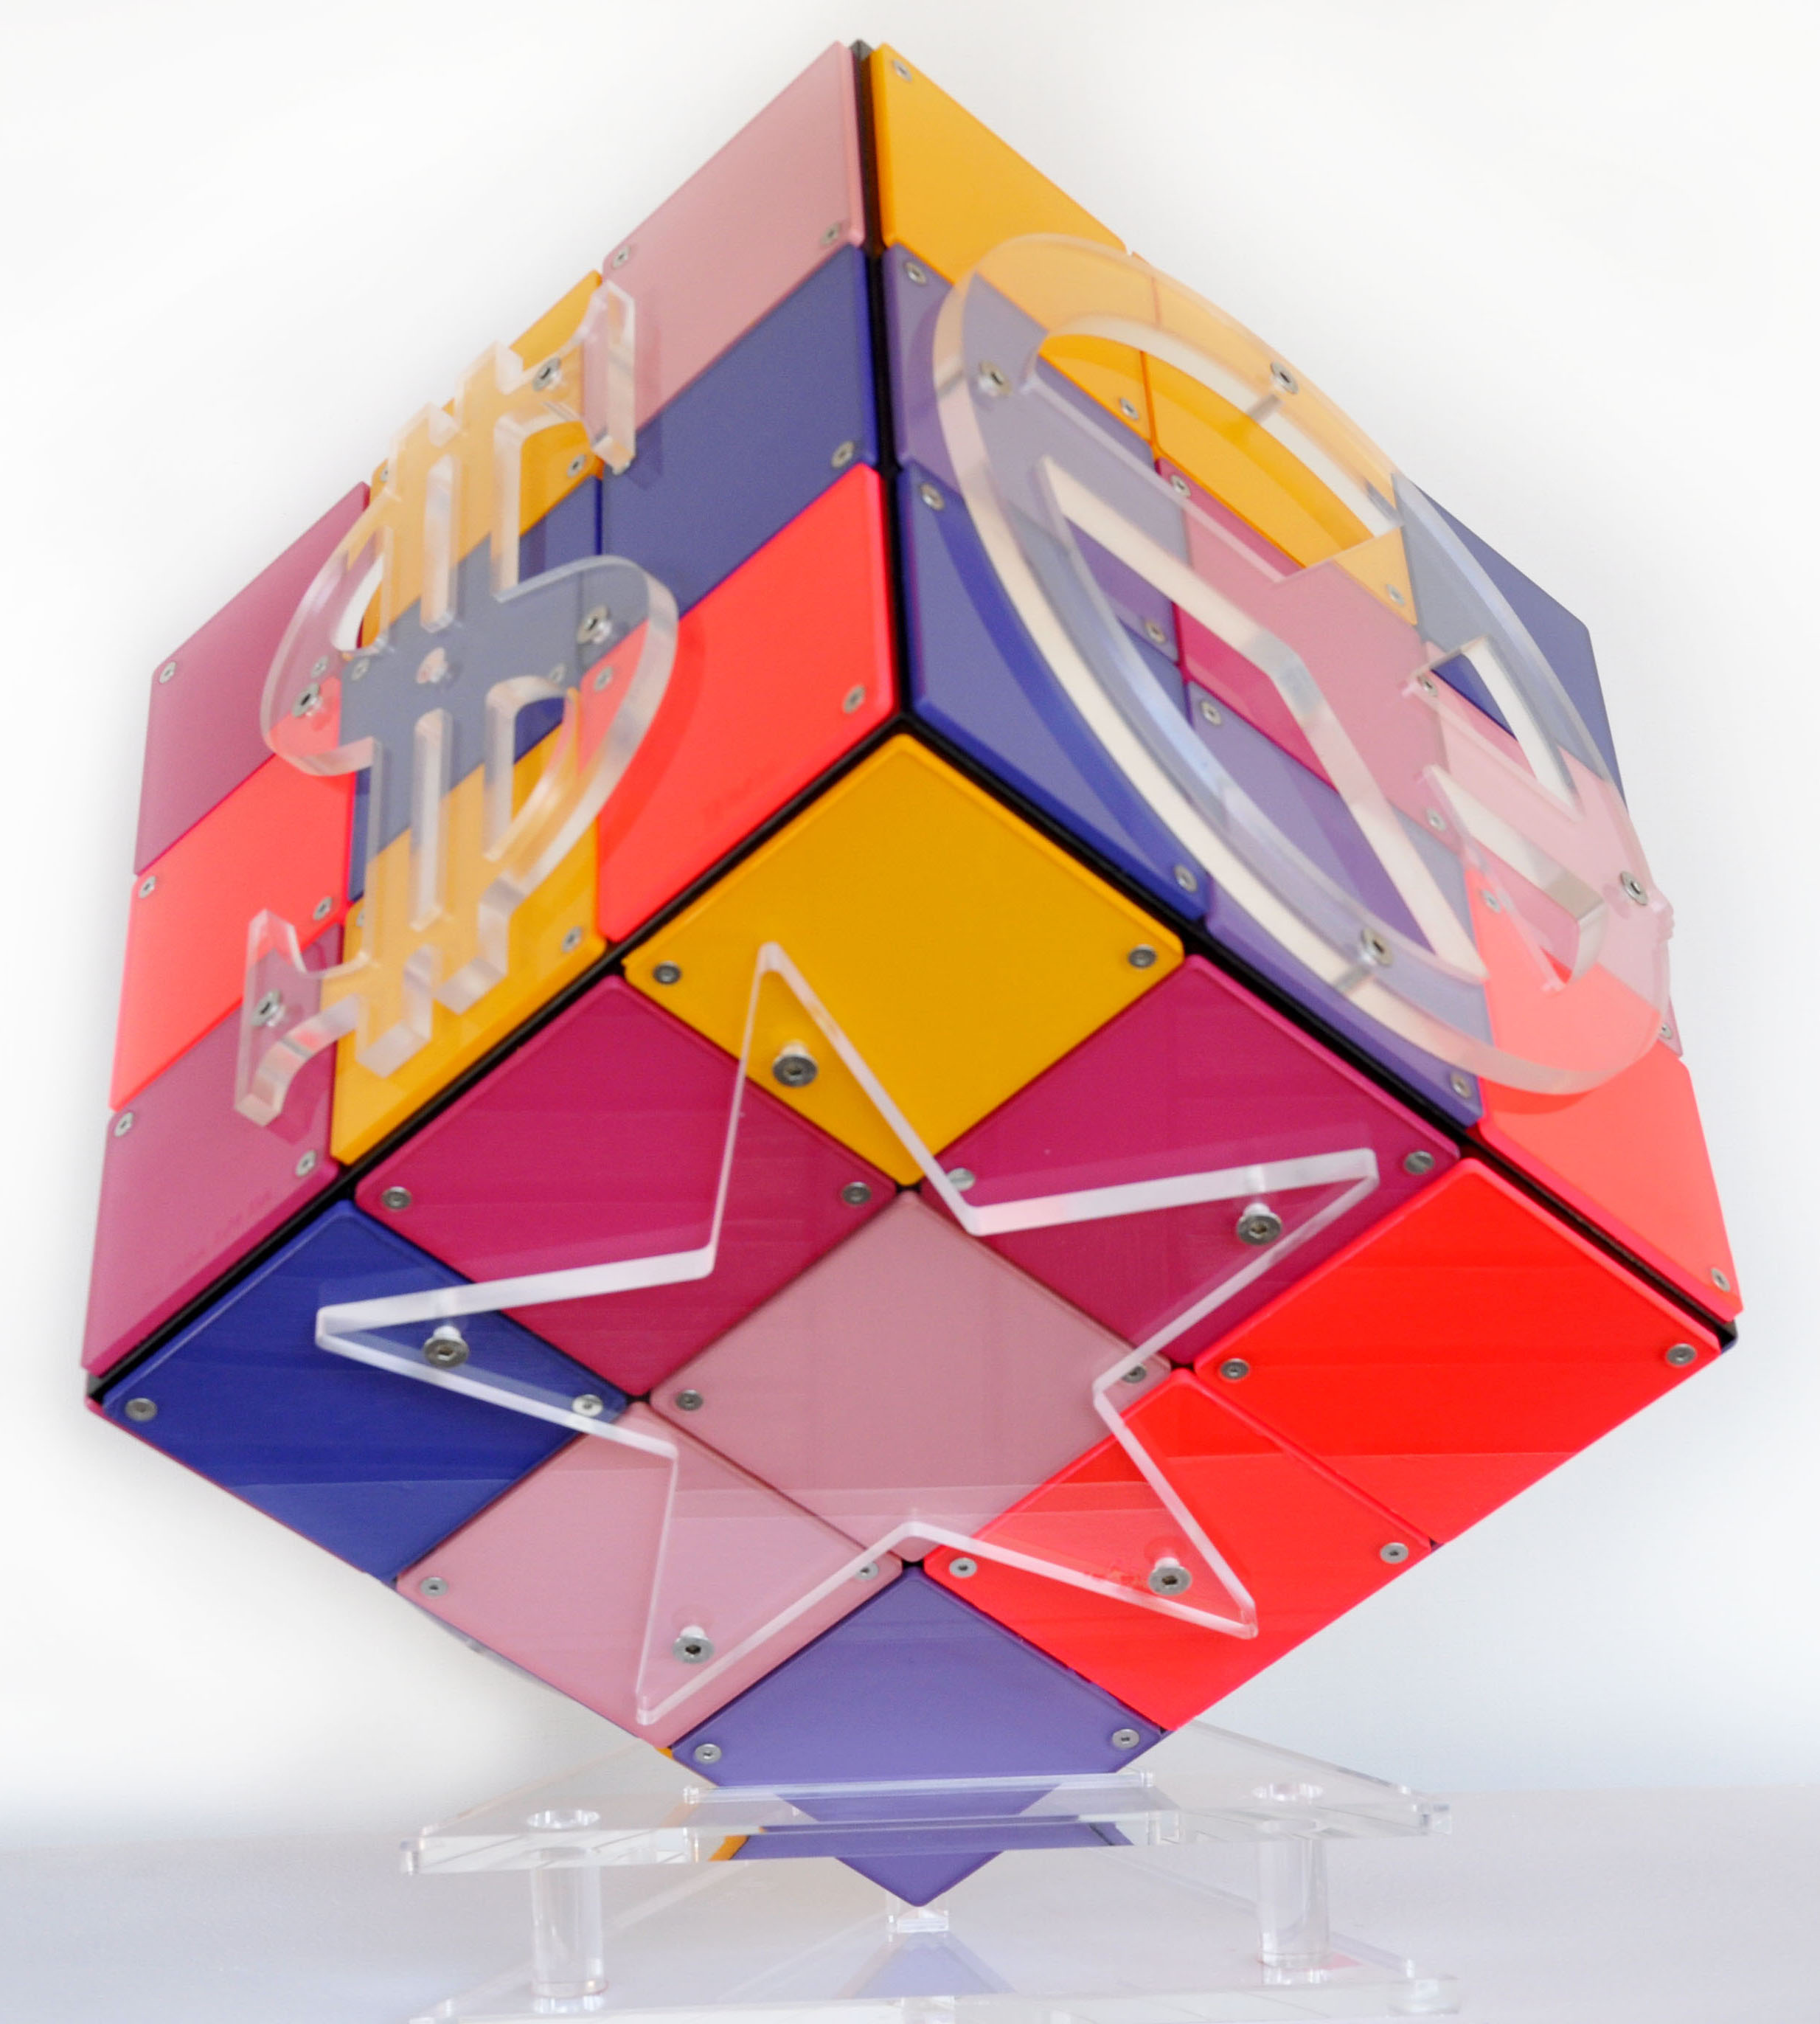 The Pop Cube